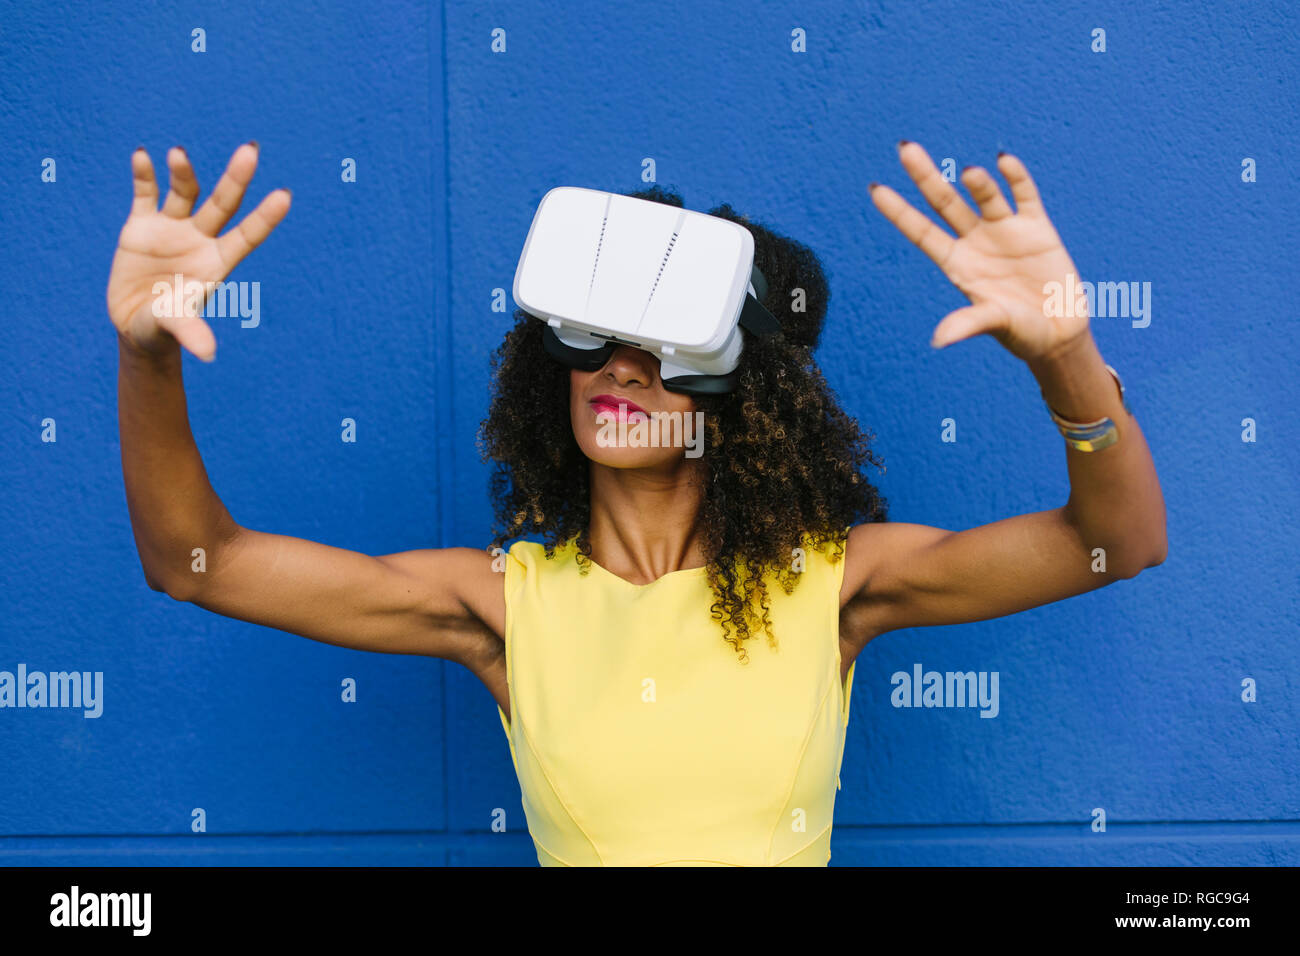 Woman using Virtual Reality Glasses against blue background - Stock Image